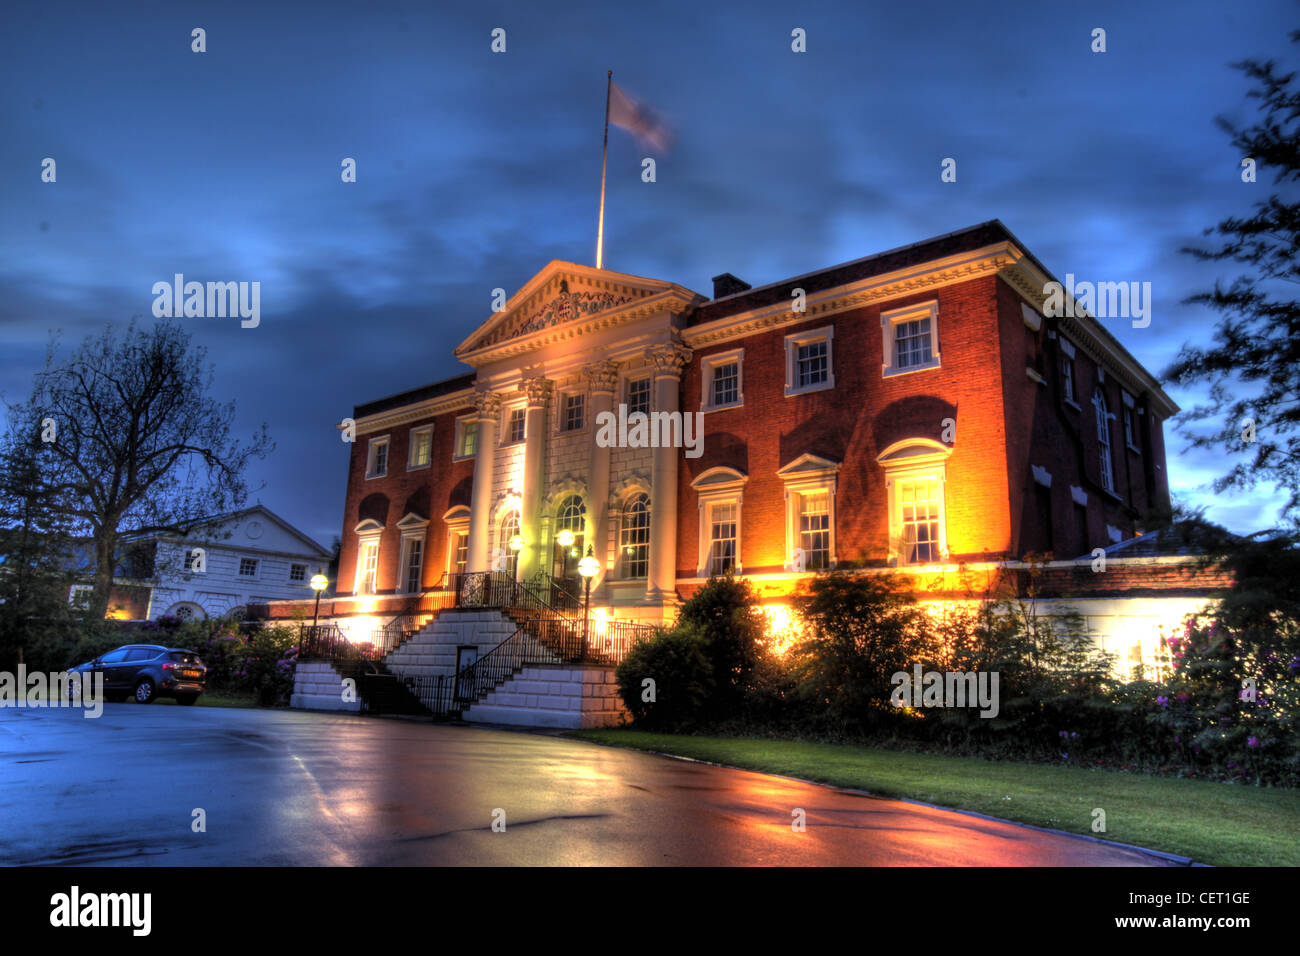 Dusk,At,Warrington,Town,Hall,Cheshire,England,UK,night,shot,reflection,reflections,gotonysmith,flag,flying,long,exposure,classic,english,british,building,architechture,bank,hall,architecture,building,stately,home,1750,Thomas,Patten,James,Gibbs,important,nightshot,image,rain,wet,path,road,roads,architectural,historian,Nikolaus,Pevsner,declared,it,to,be,the,finest,house,of,its,date,in,south,Lancashire,townhall,WA1,1UH,Warrington Town Hall,Town Hall Sankey St,Bewsey and Whitecross,Warrington WA1 1UH,gotonysmith,Warringtonians,WA11UH,Buy Pictures of,Buy Images Of